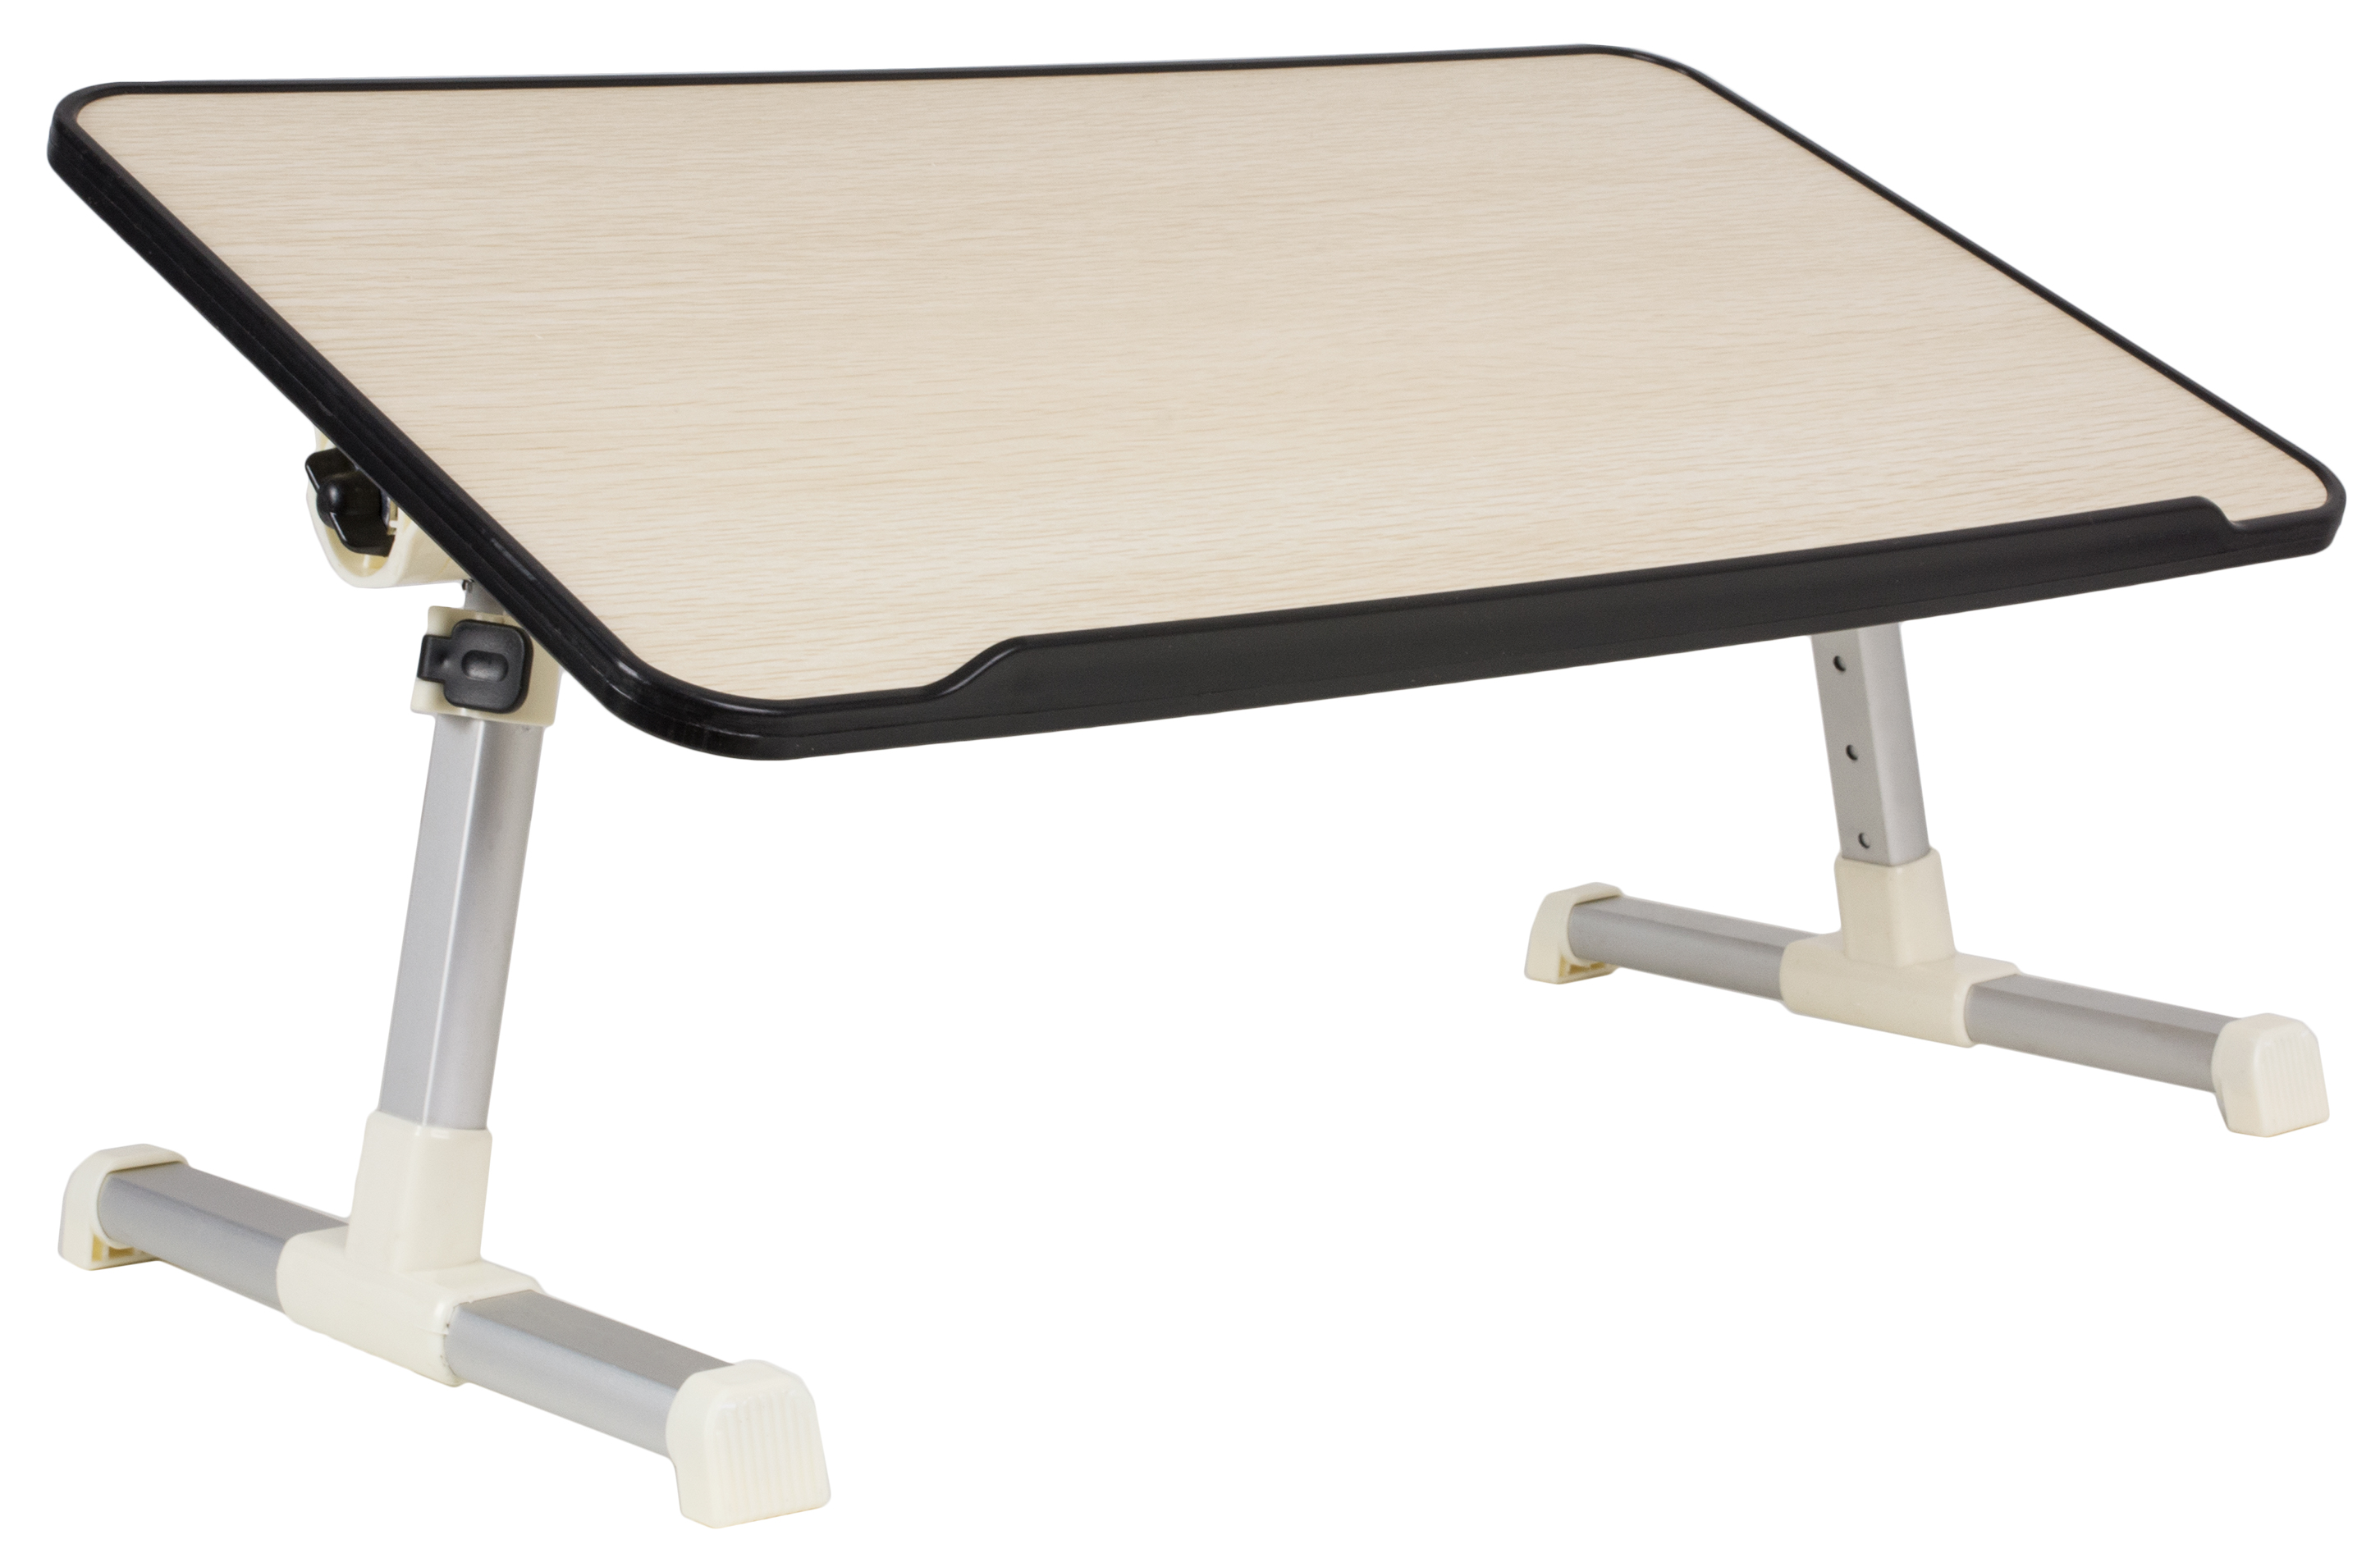 VIVO Height Adjustable Tilting Laptop Workstation Bed Tray, Folding Portable Book Table...